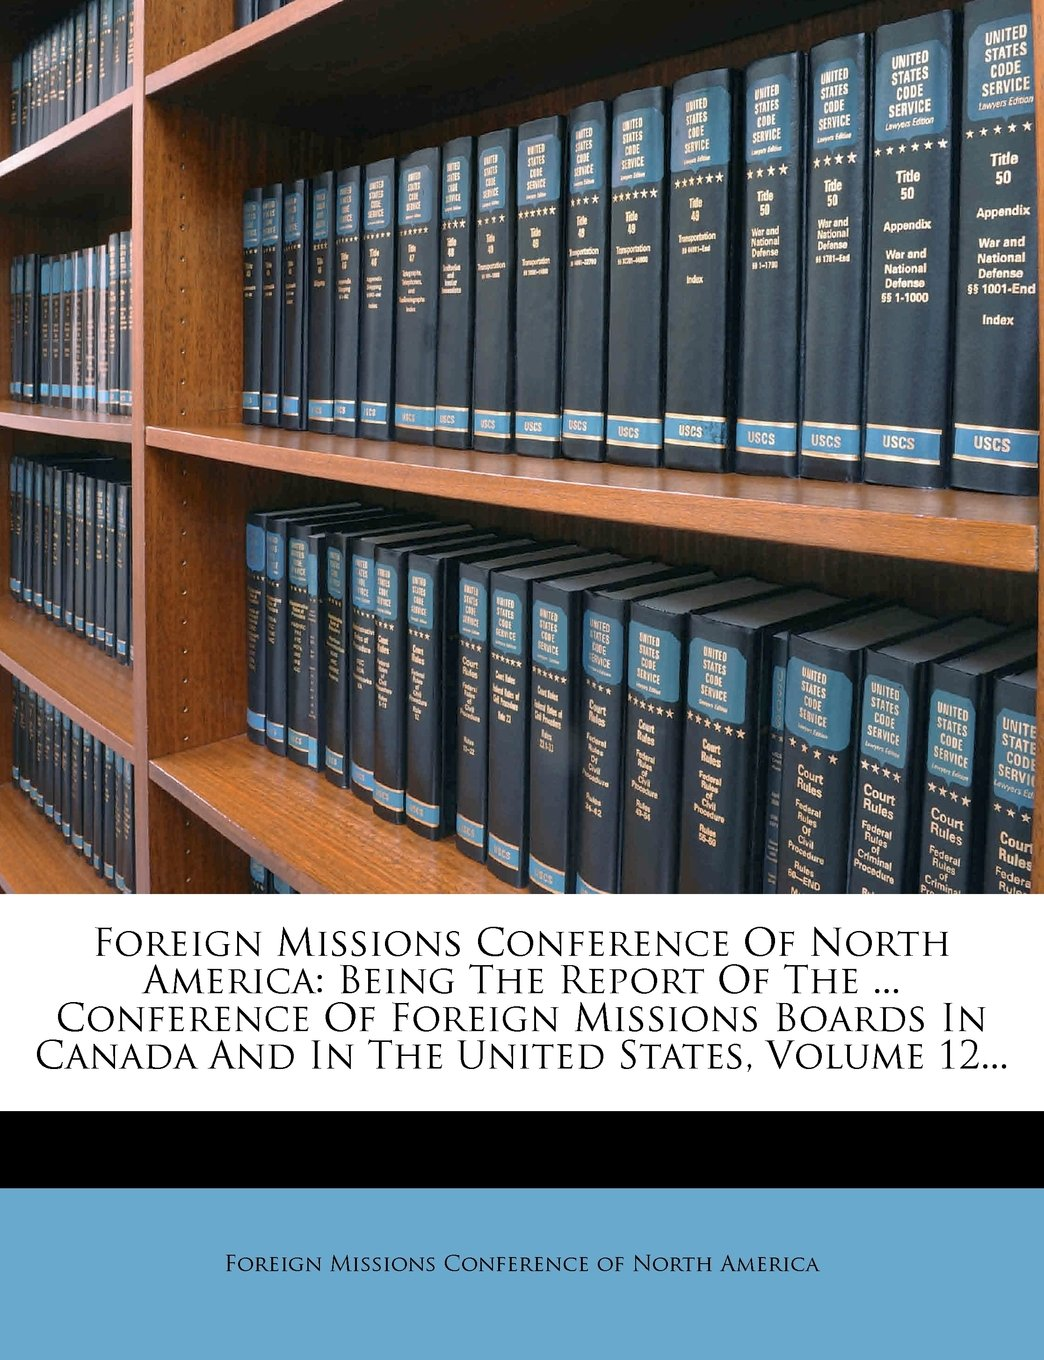 Foreign Missions Conference Of North America: Being The Report Of The ... Conference Of Foreign Missions Boards In Canada And In The United States, Volume 12... ebook